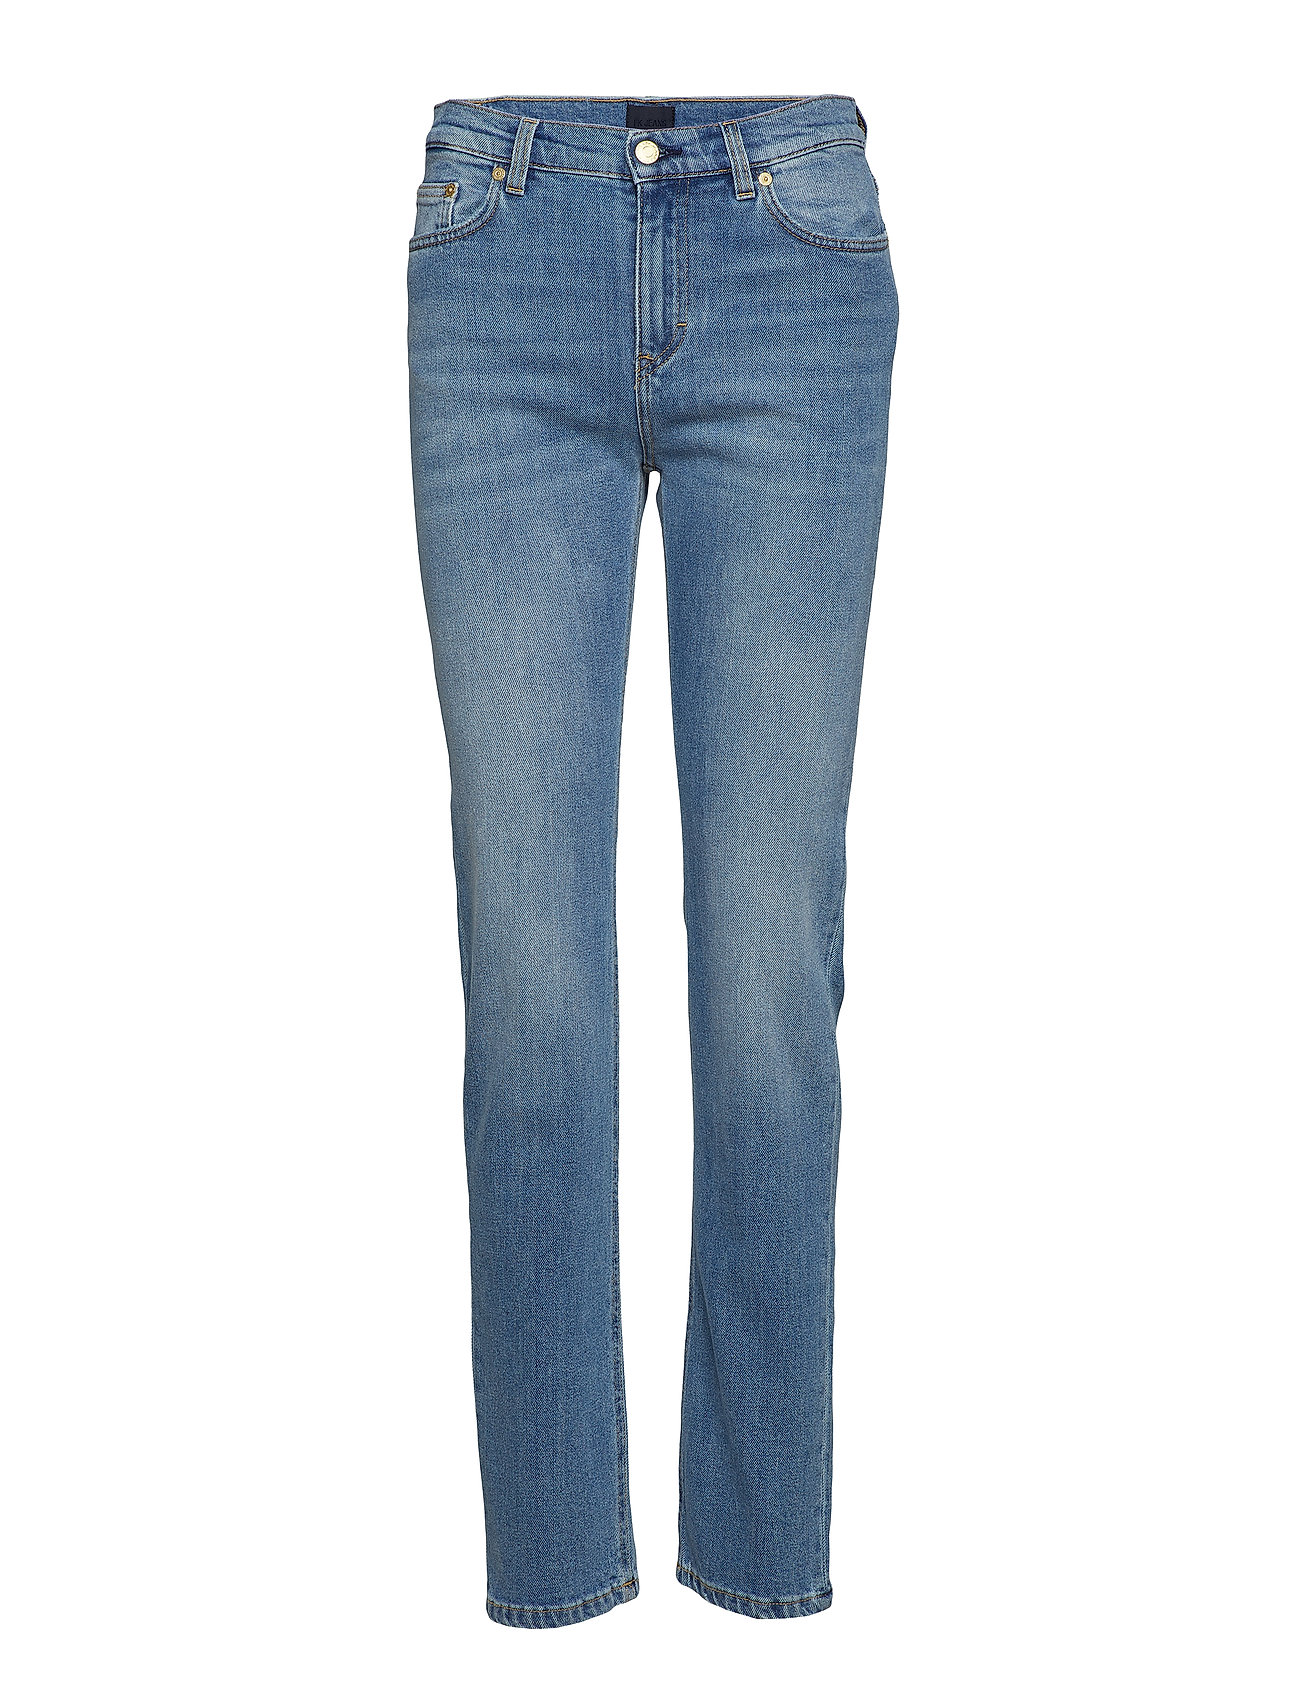 Washed Jeanmid Jeanmid Washed Taylor BlueFilippa BlueFilippa K Taylor K Taylor Washed Jeanmid rBodCxe